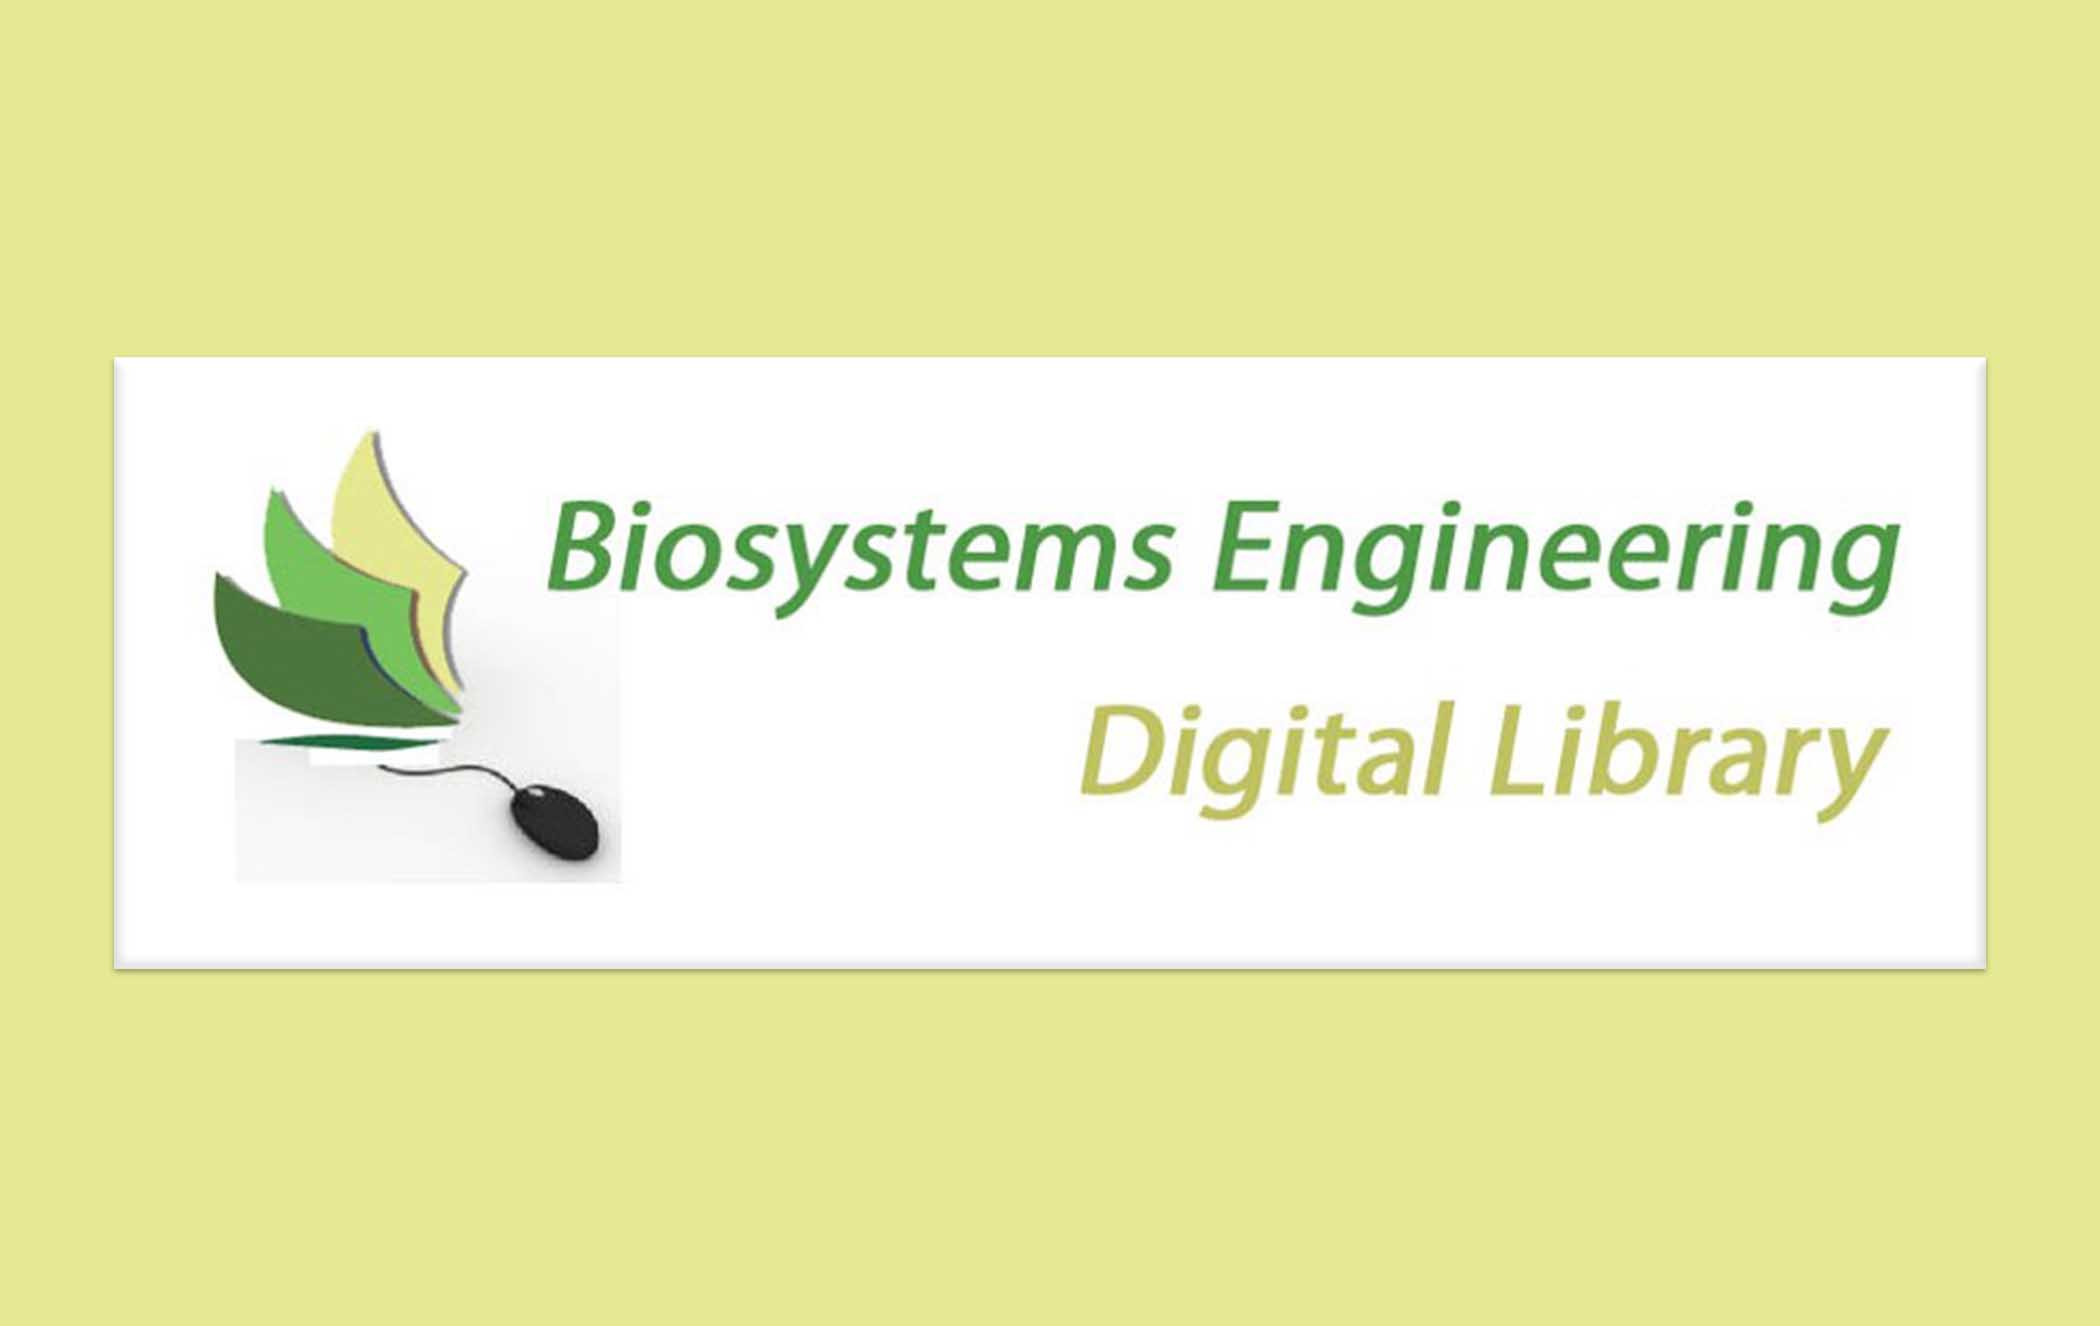 User Input Sought for Biosystems Engineering Digital Library